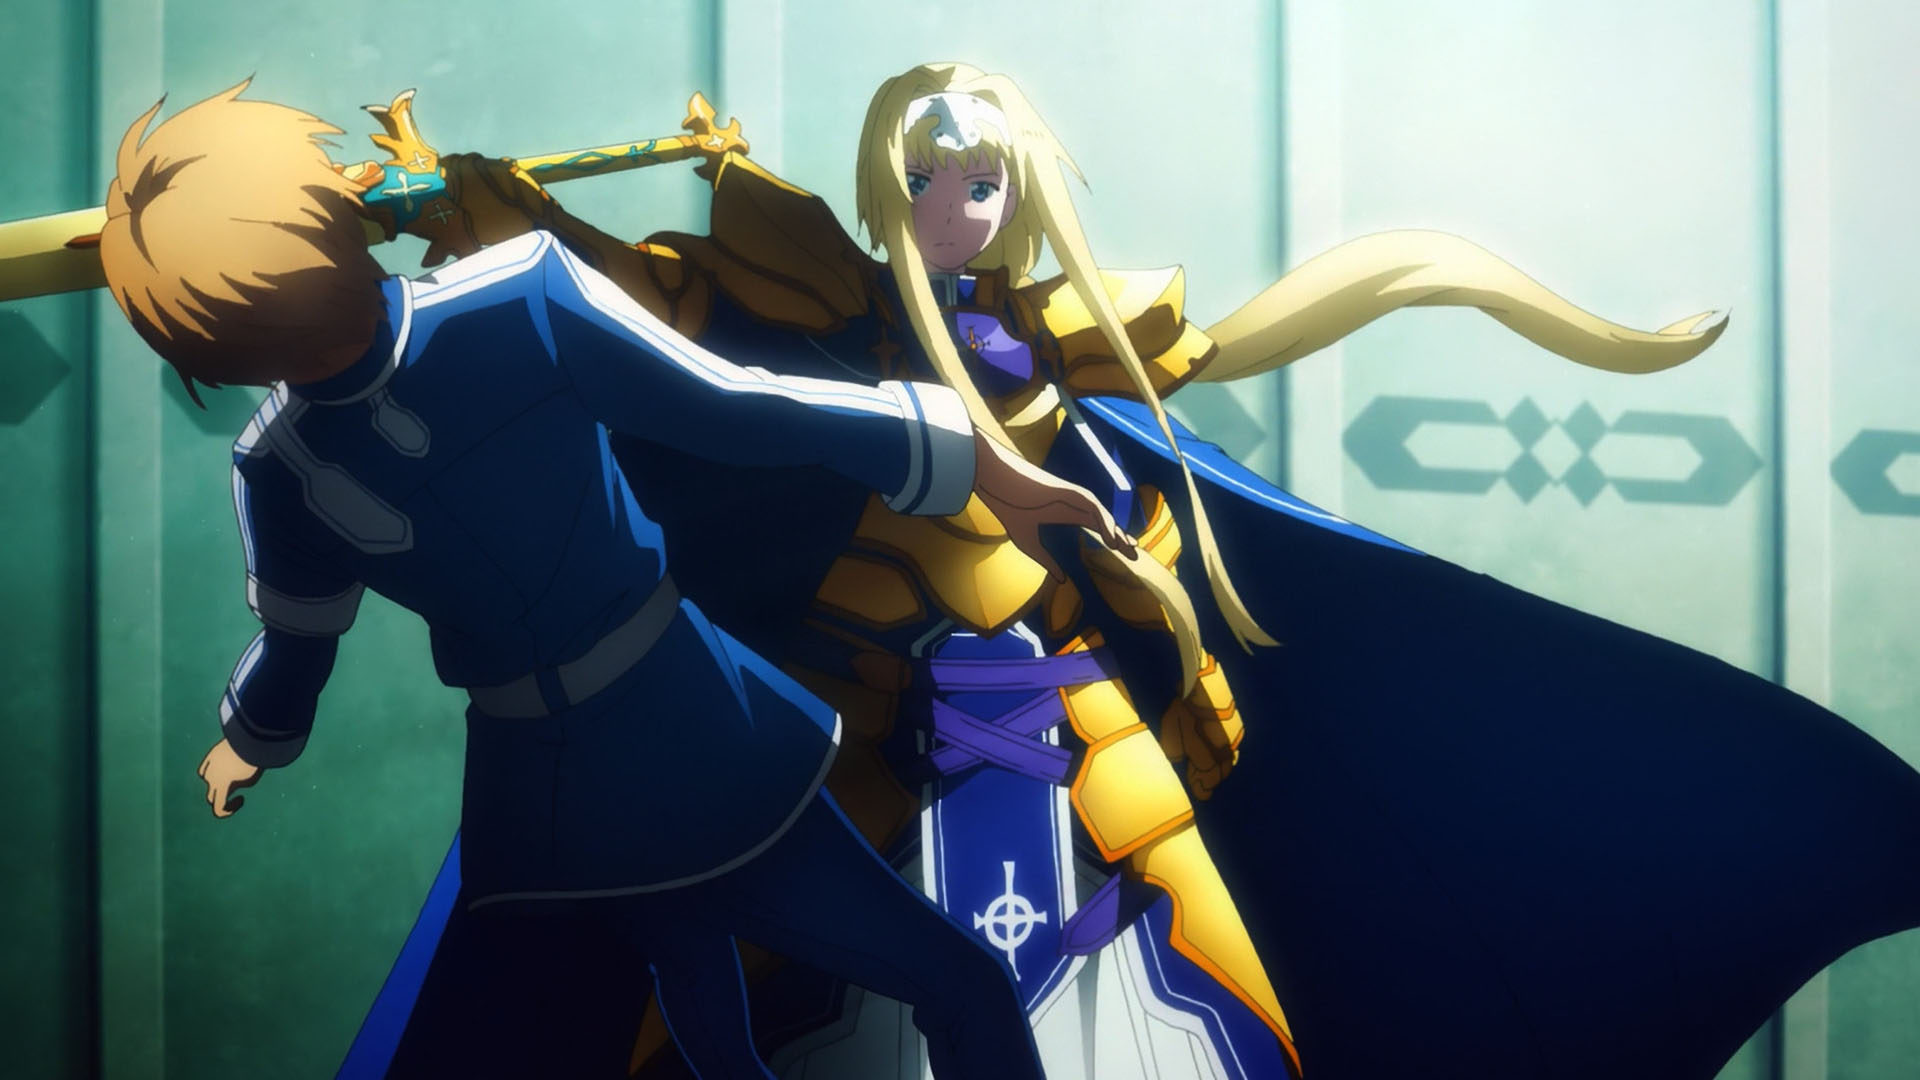 Sword%20Art%20Online%20Alicization%20-%2